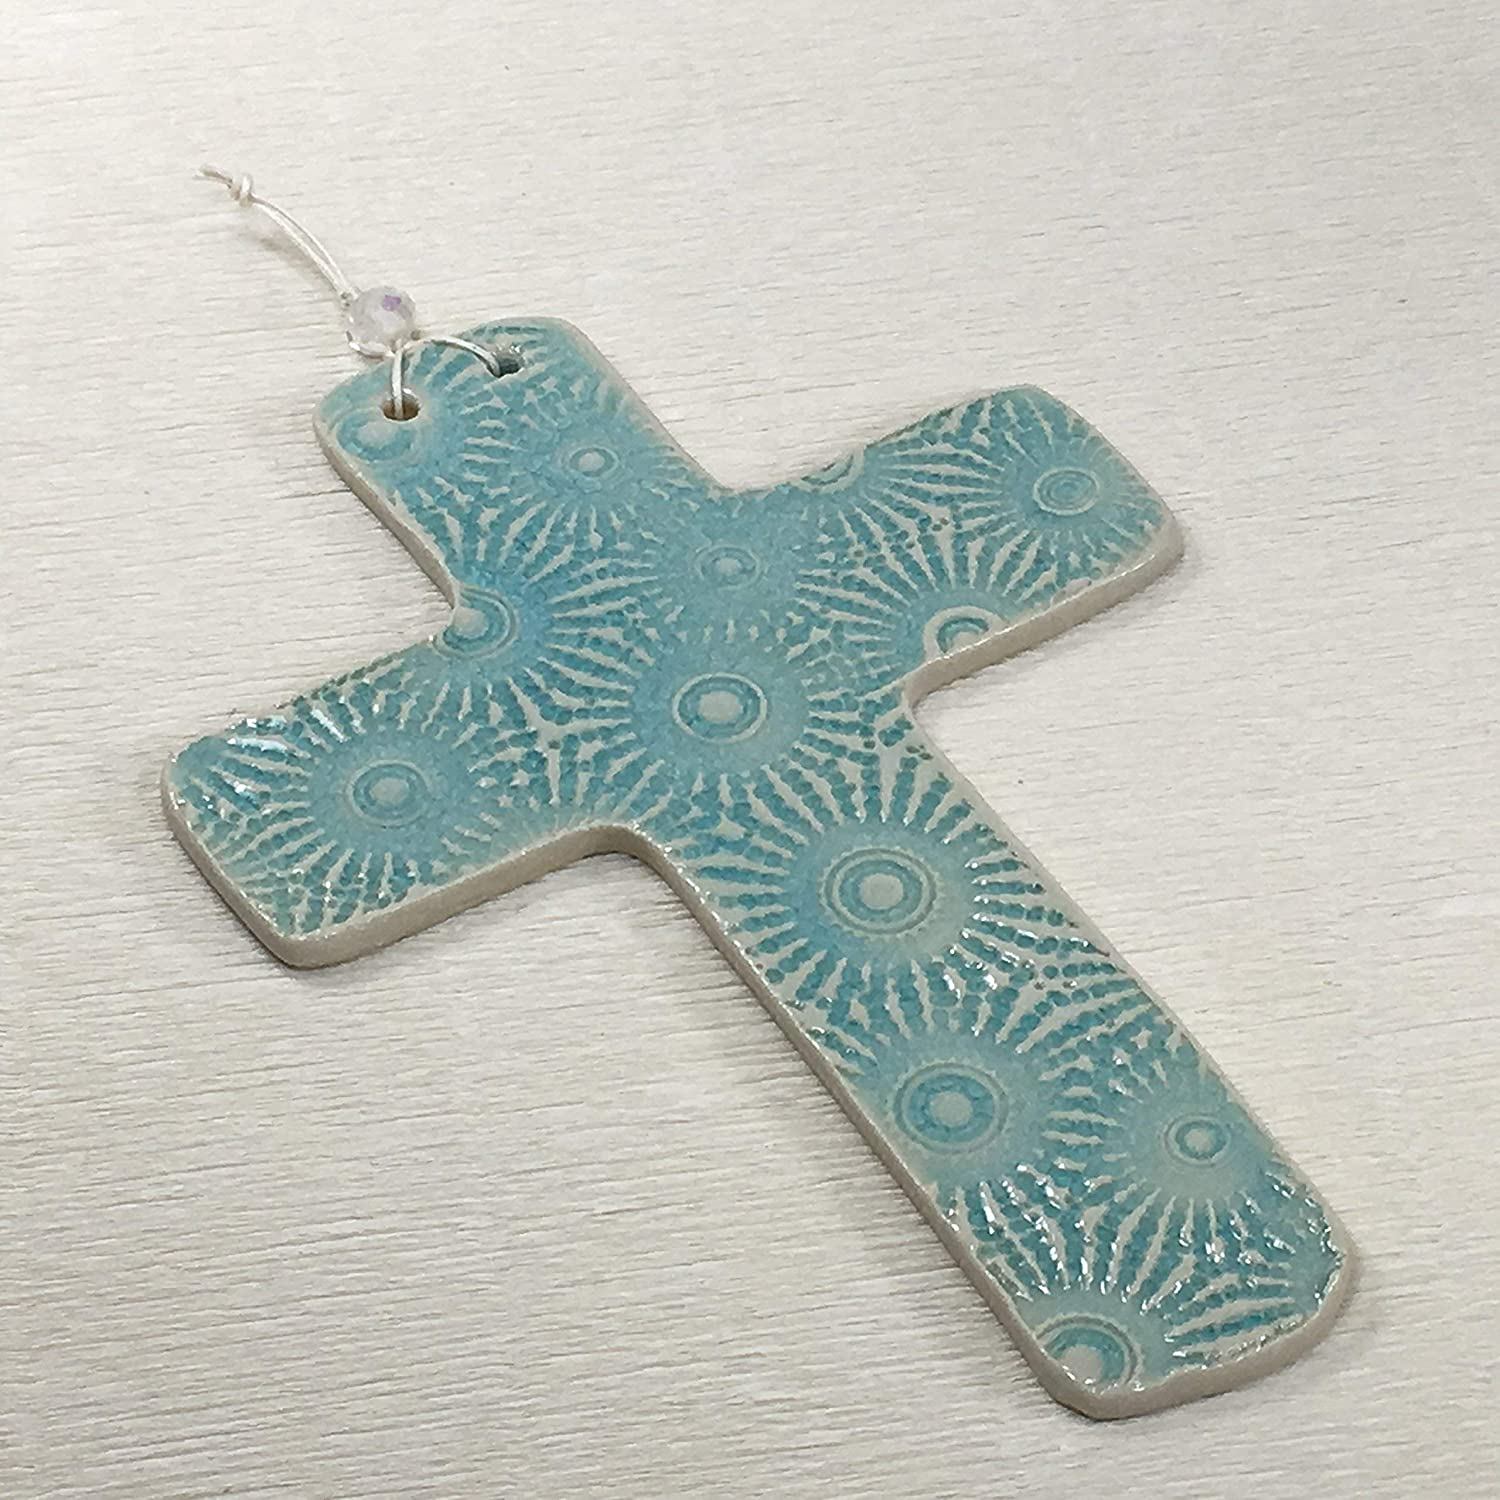 JANECKA Turquoise Wall Hanging Pottery Cross 5 x 7 9th Anniversary Gift